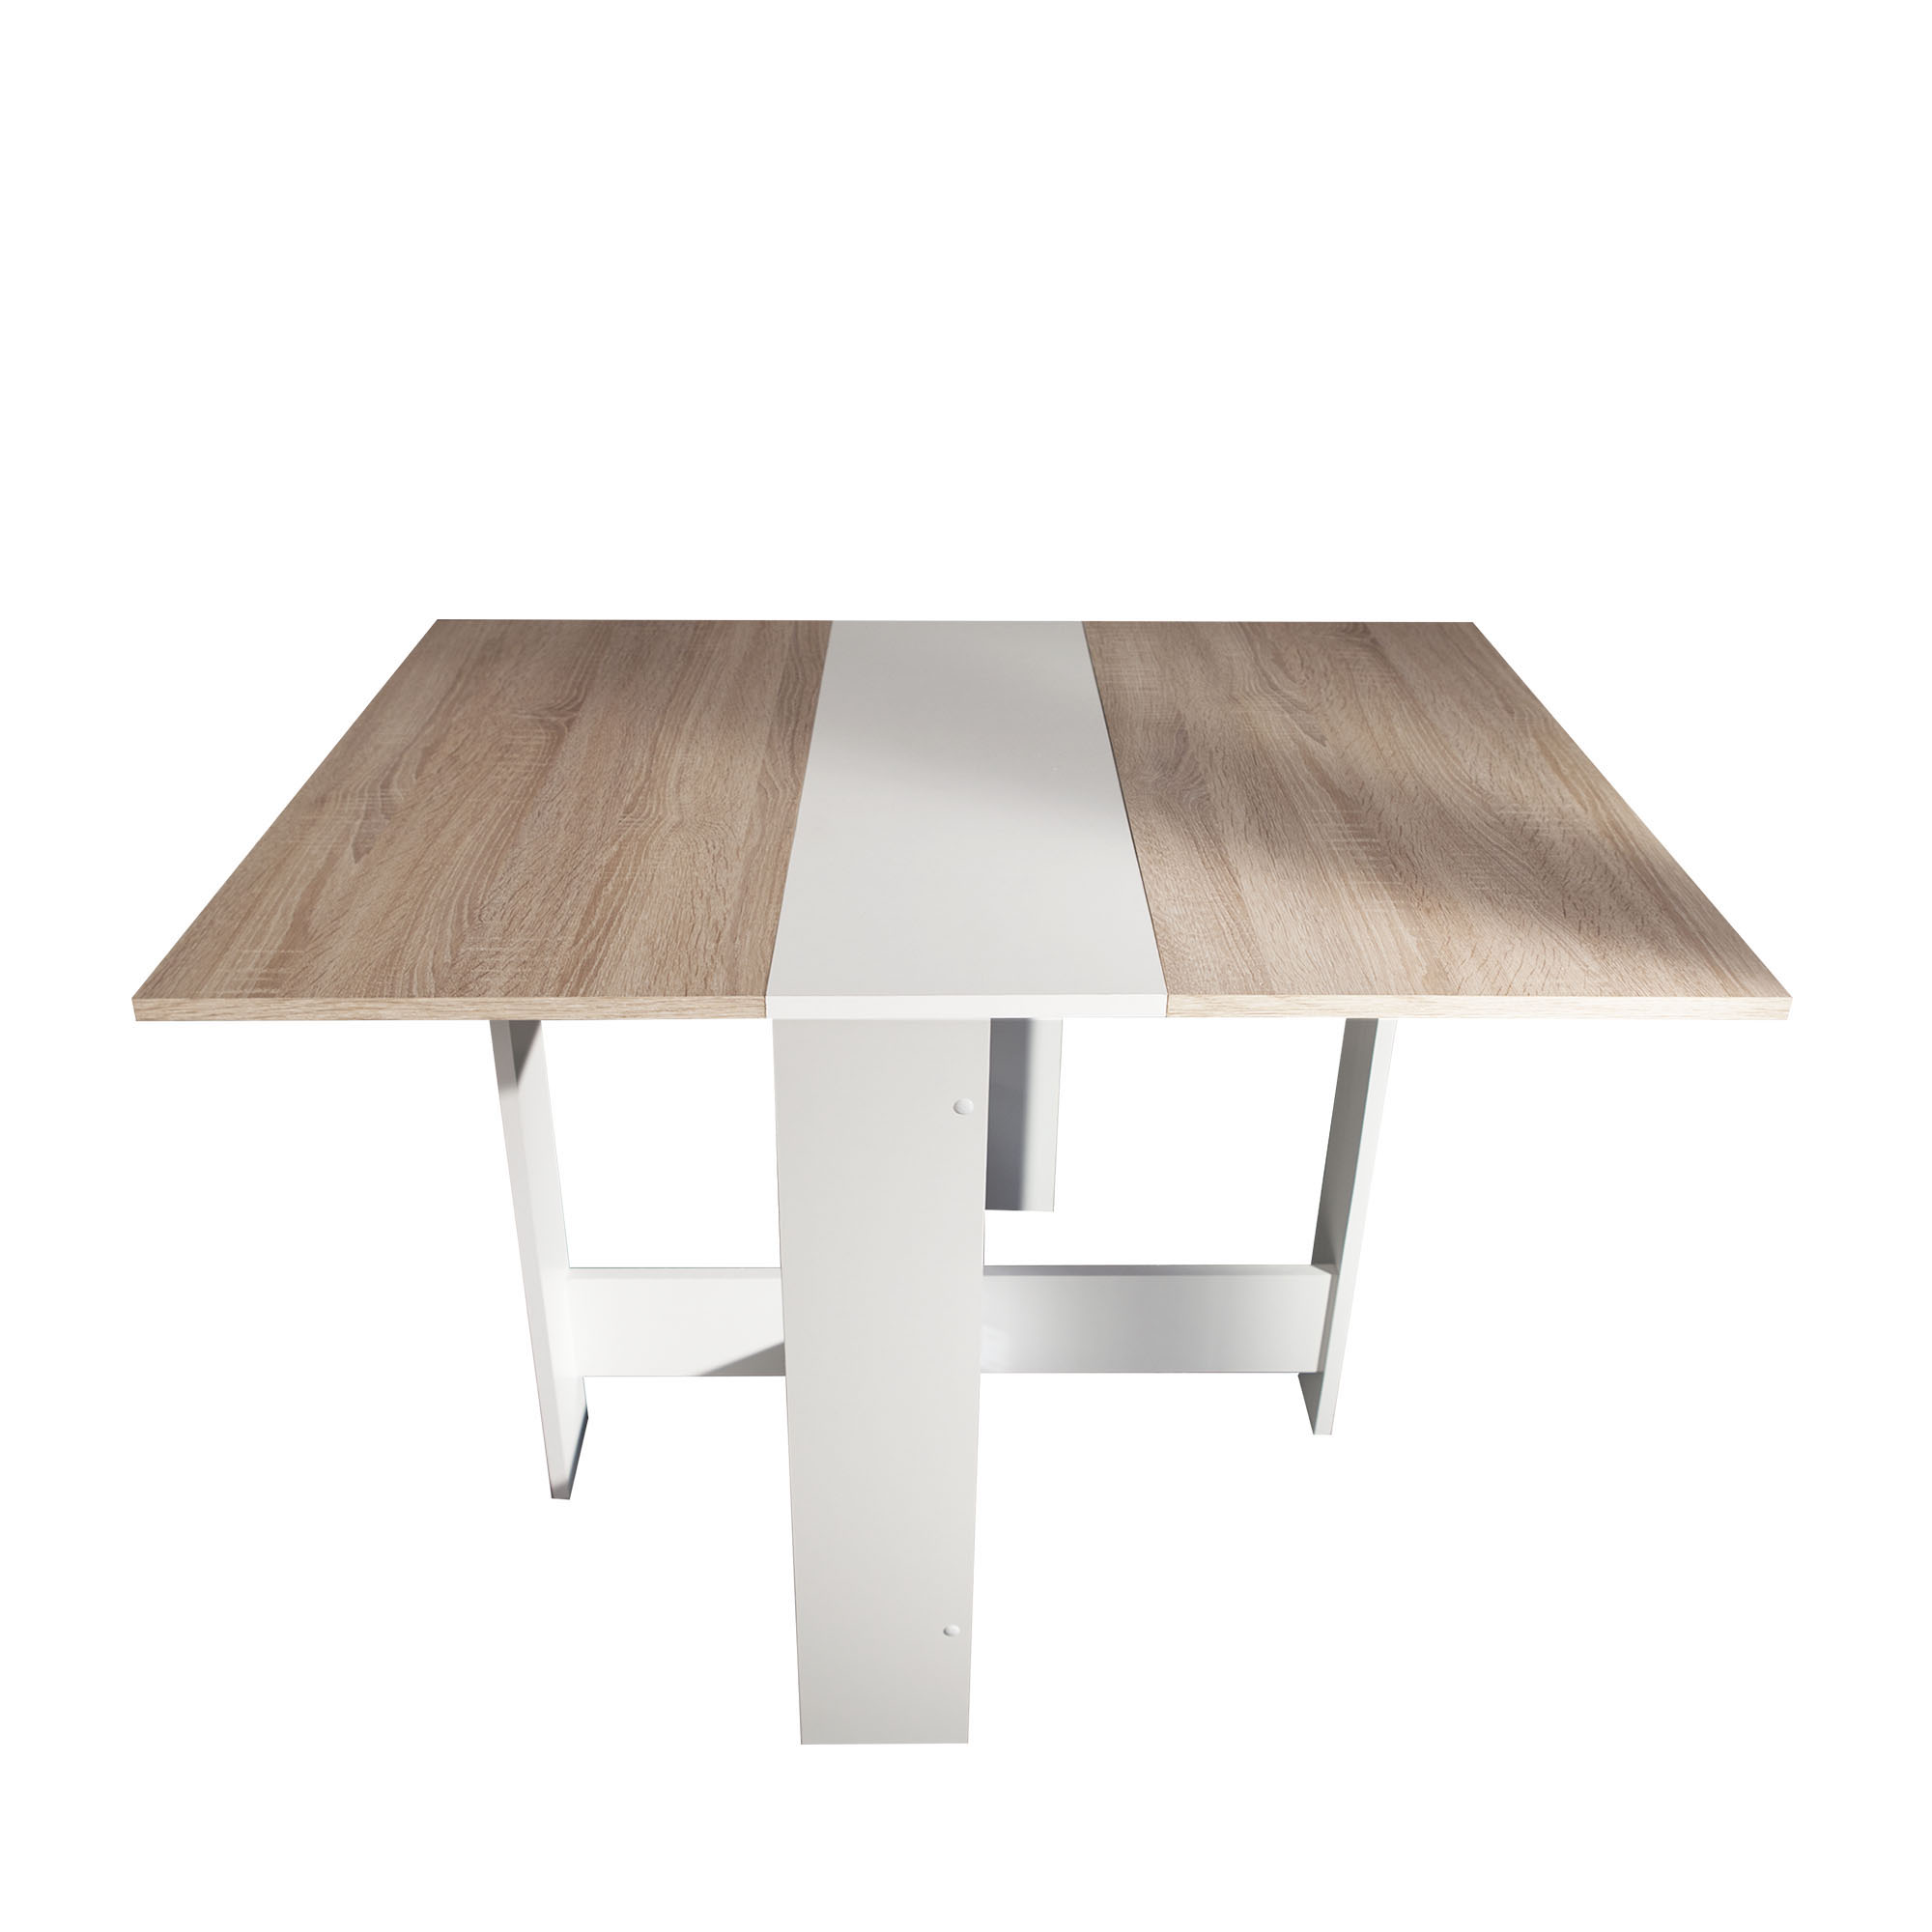 Table basse pliante - Petite table basse pliante ...